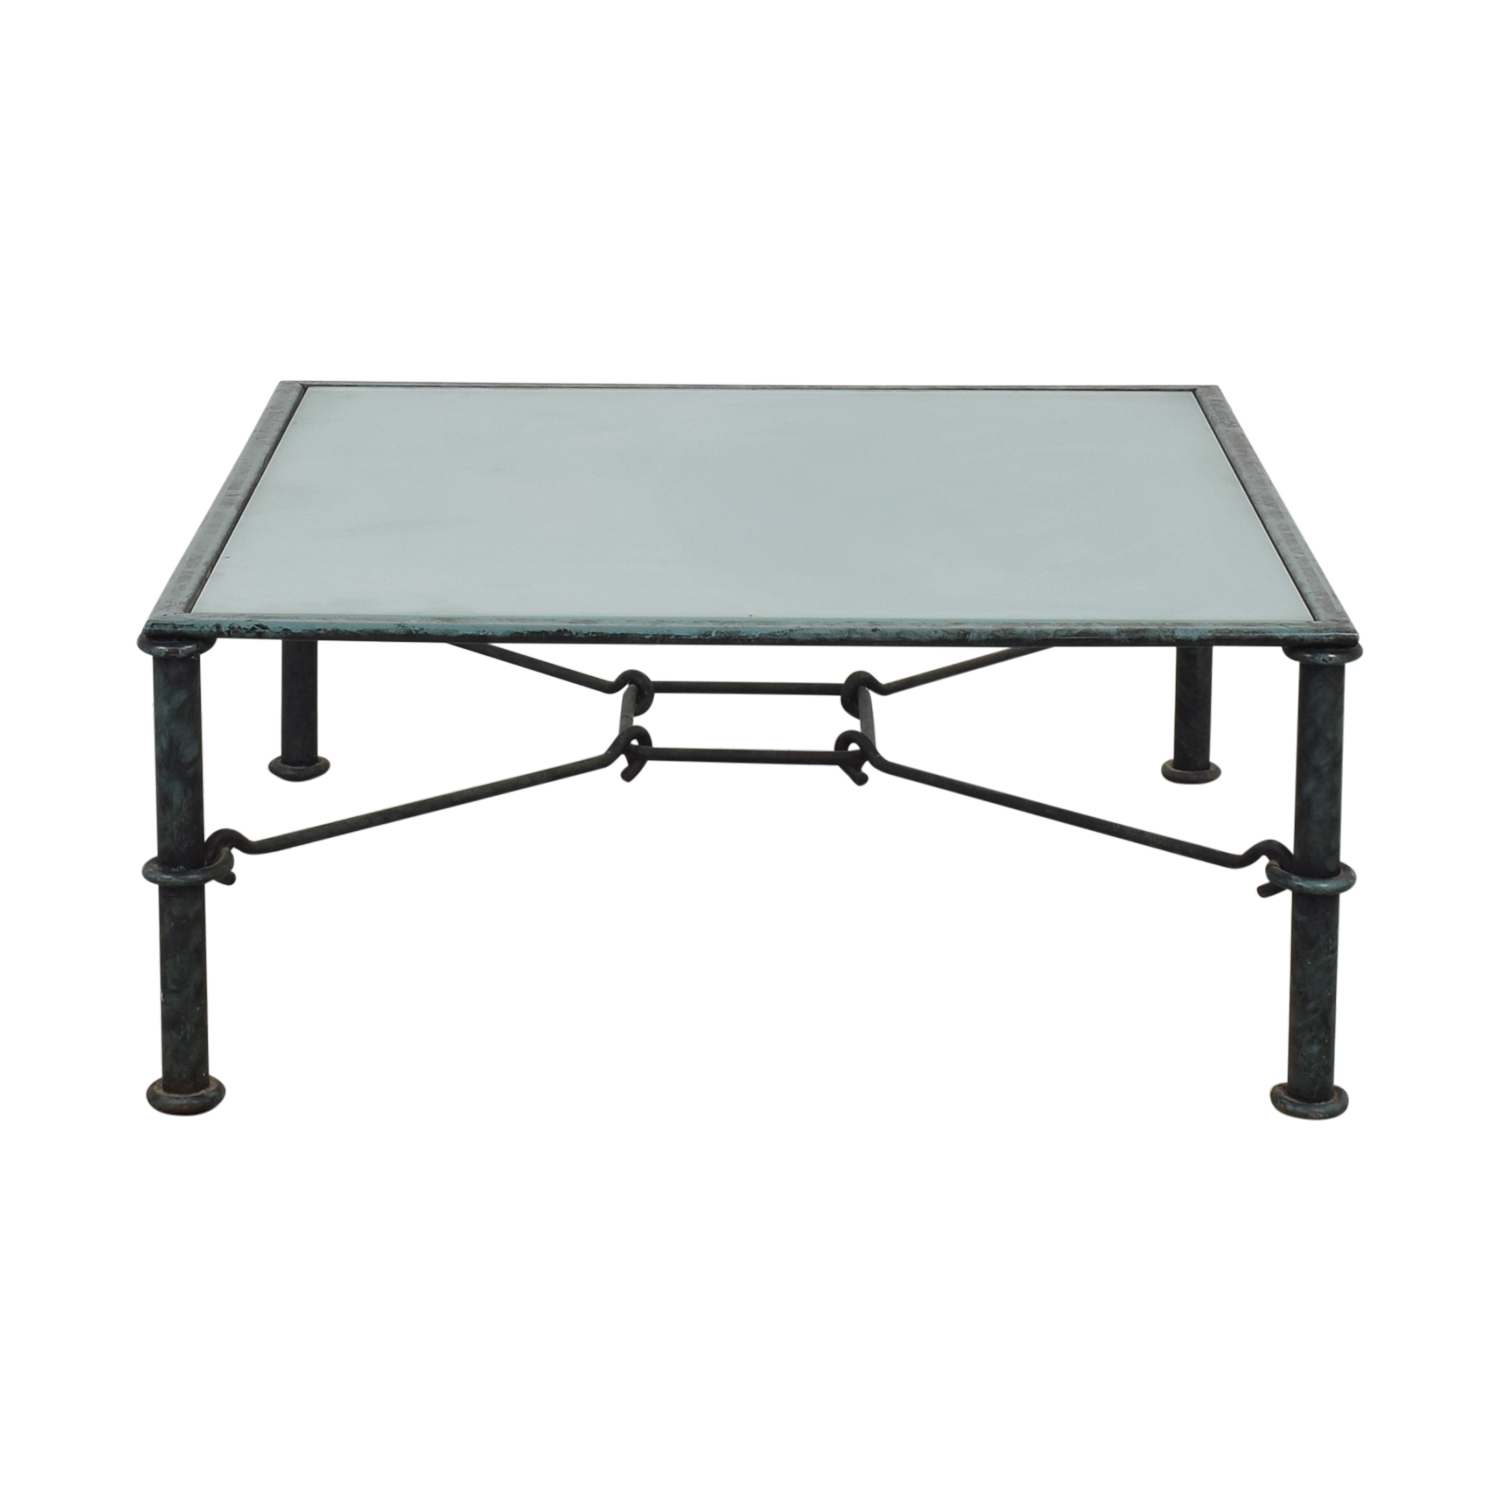 88 off square coffee table tables